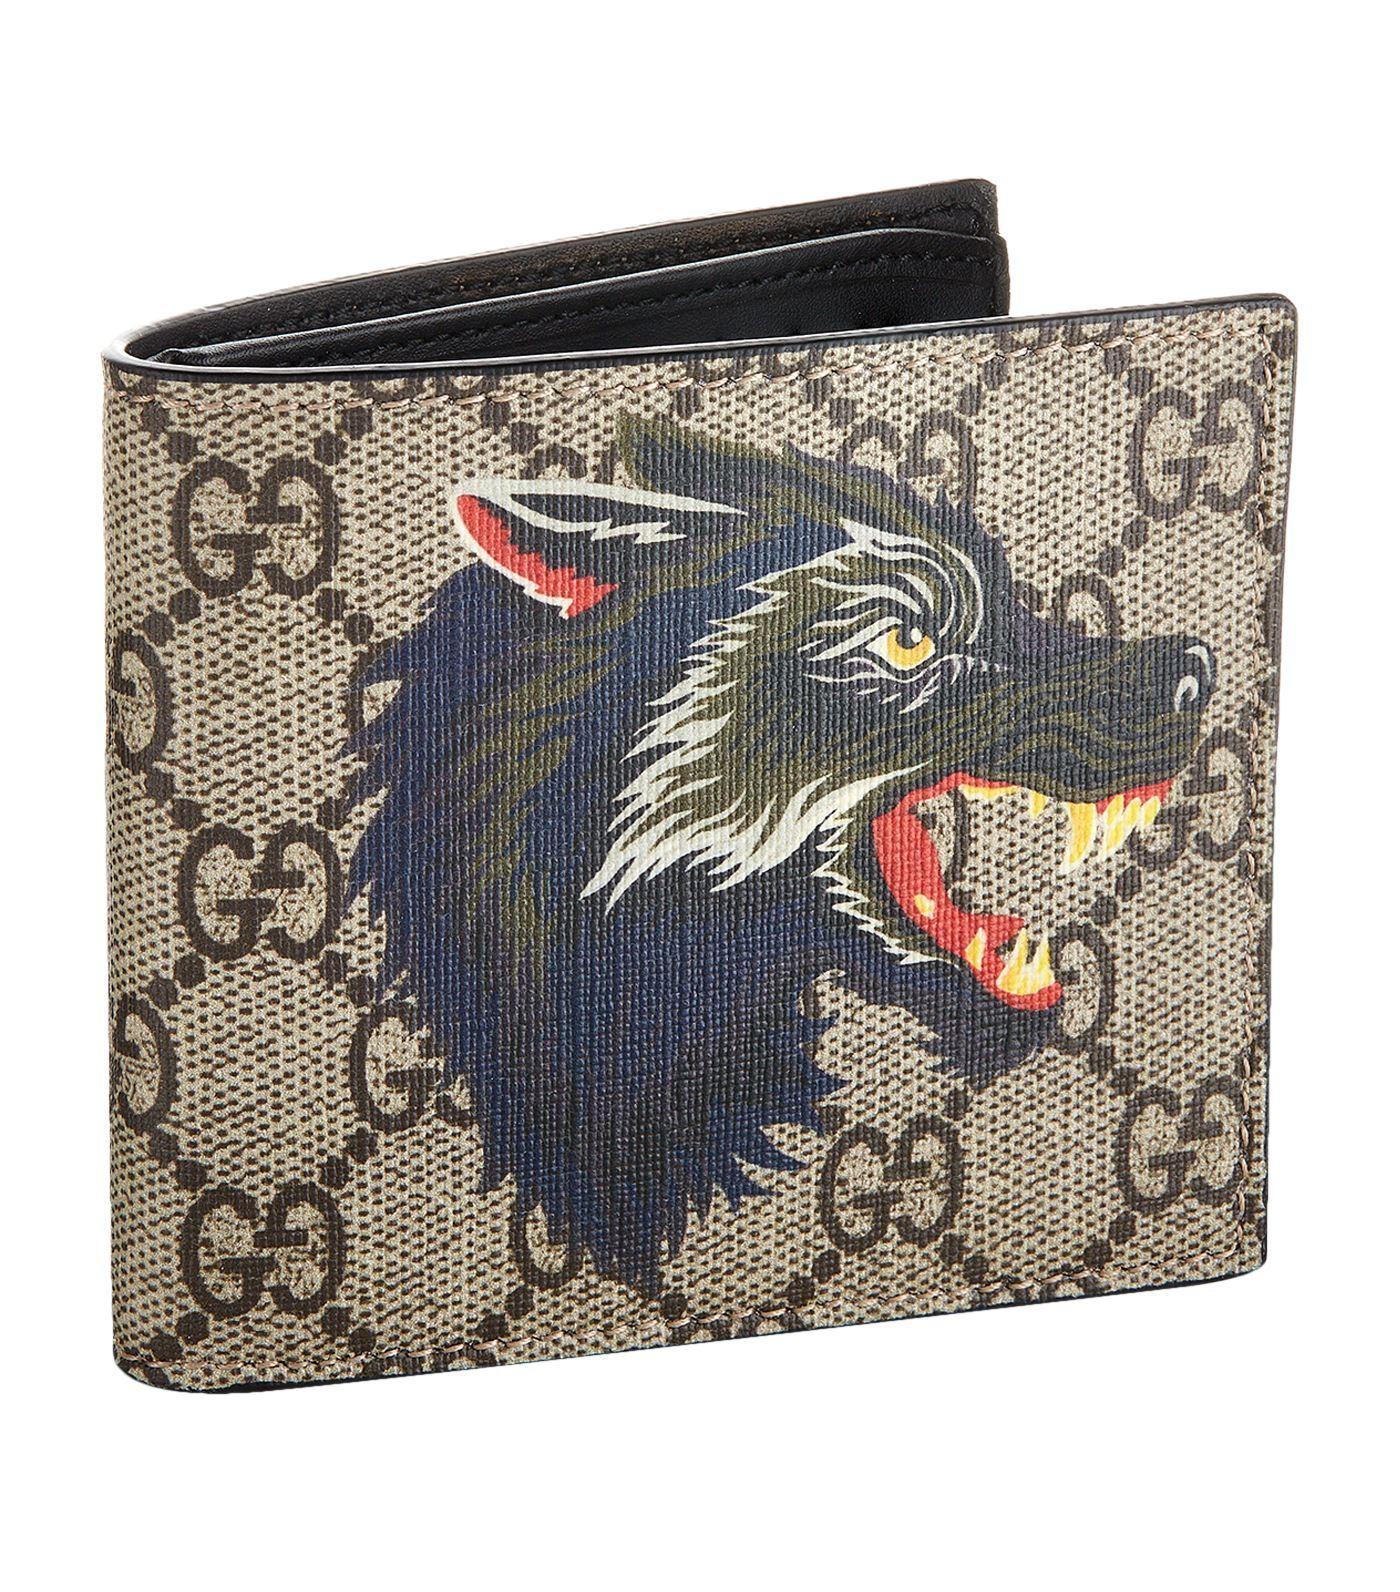 4b3dcfe491c Gucci Wolf Printed Gg Supreme Classic Wallet In Beige Multi